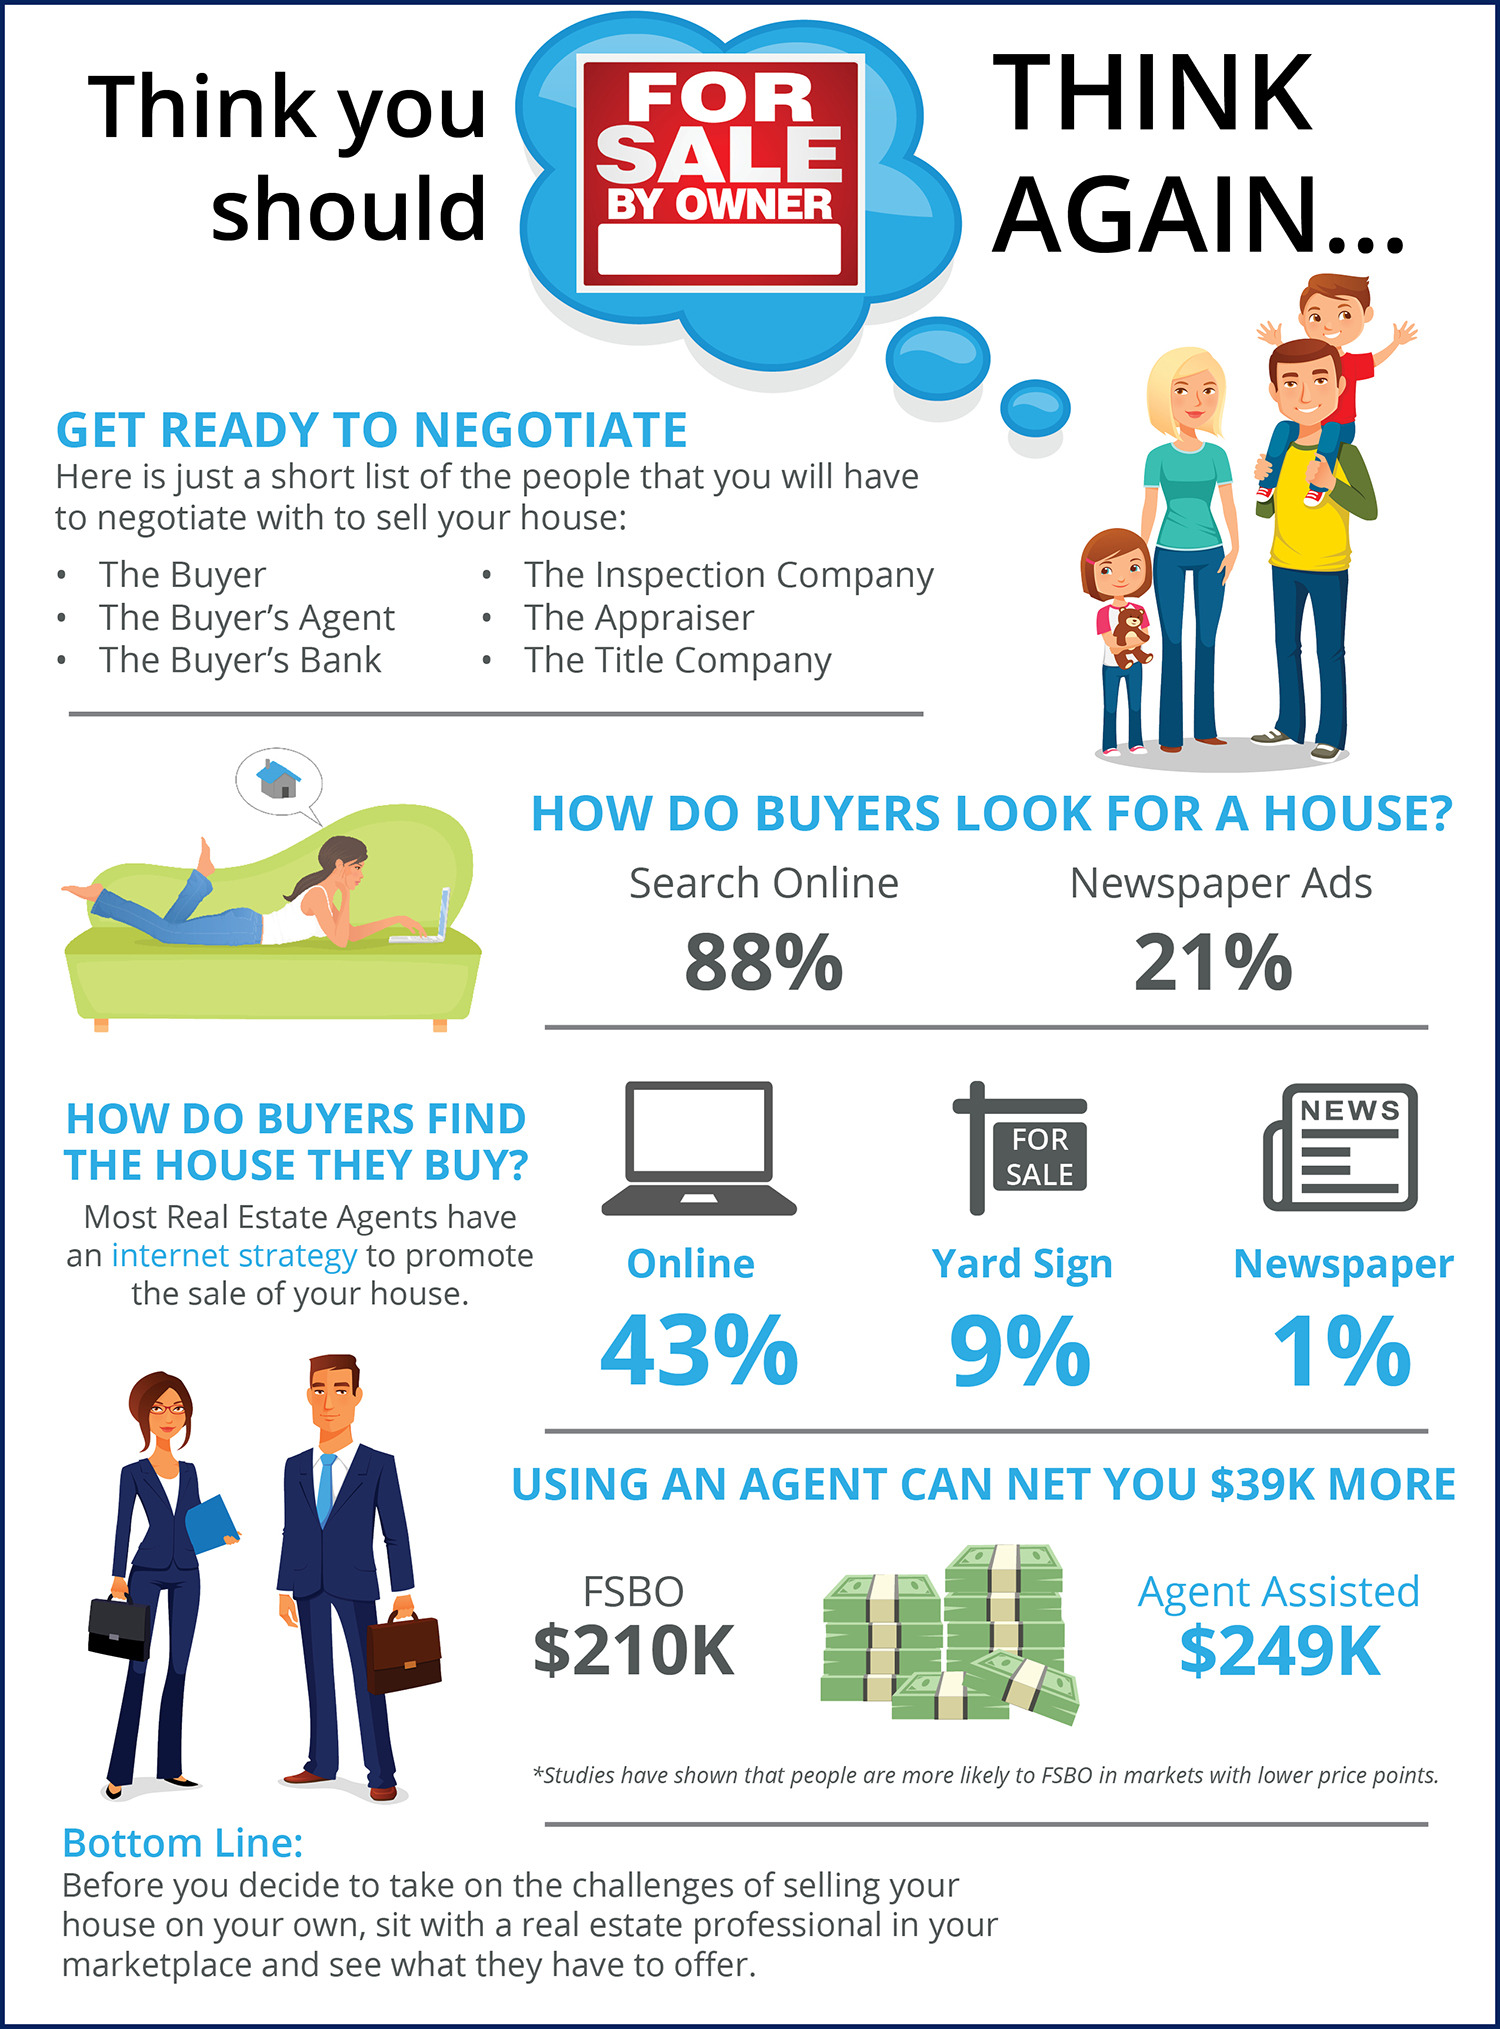 Why Home Sellers Should Not FSBO